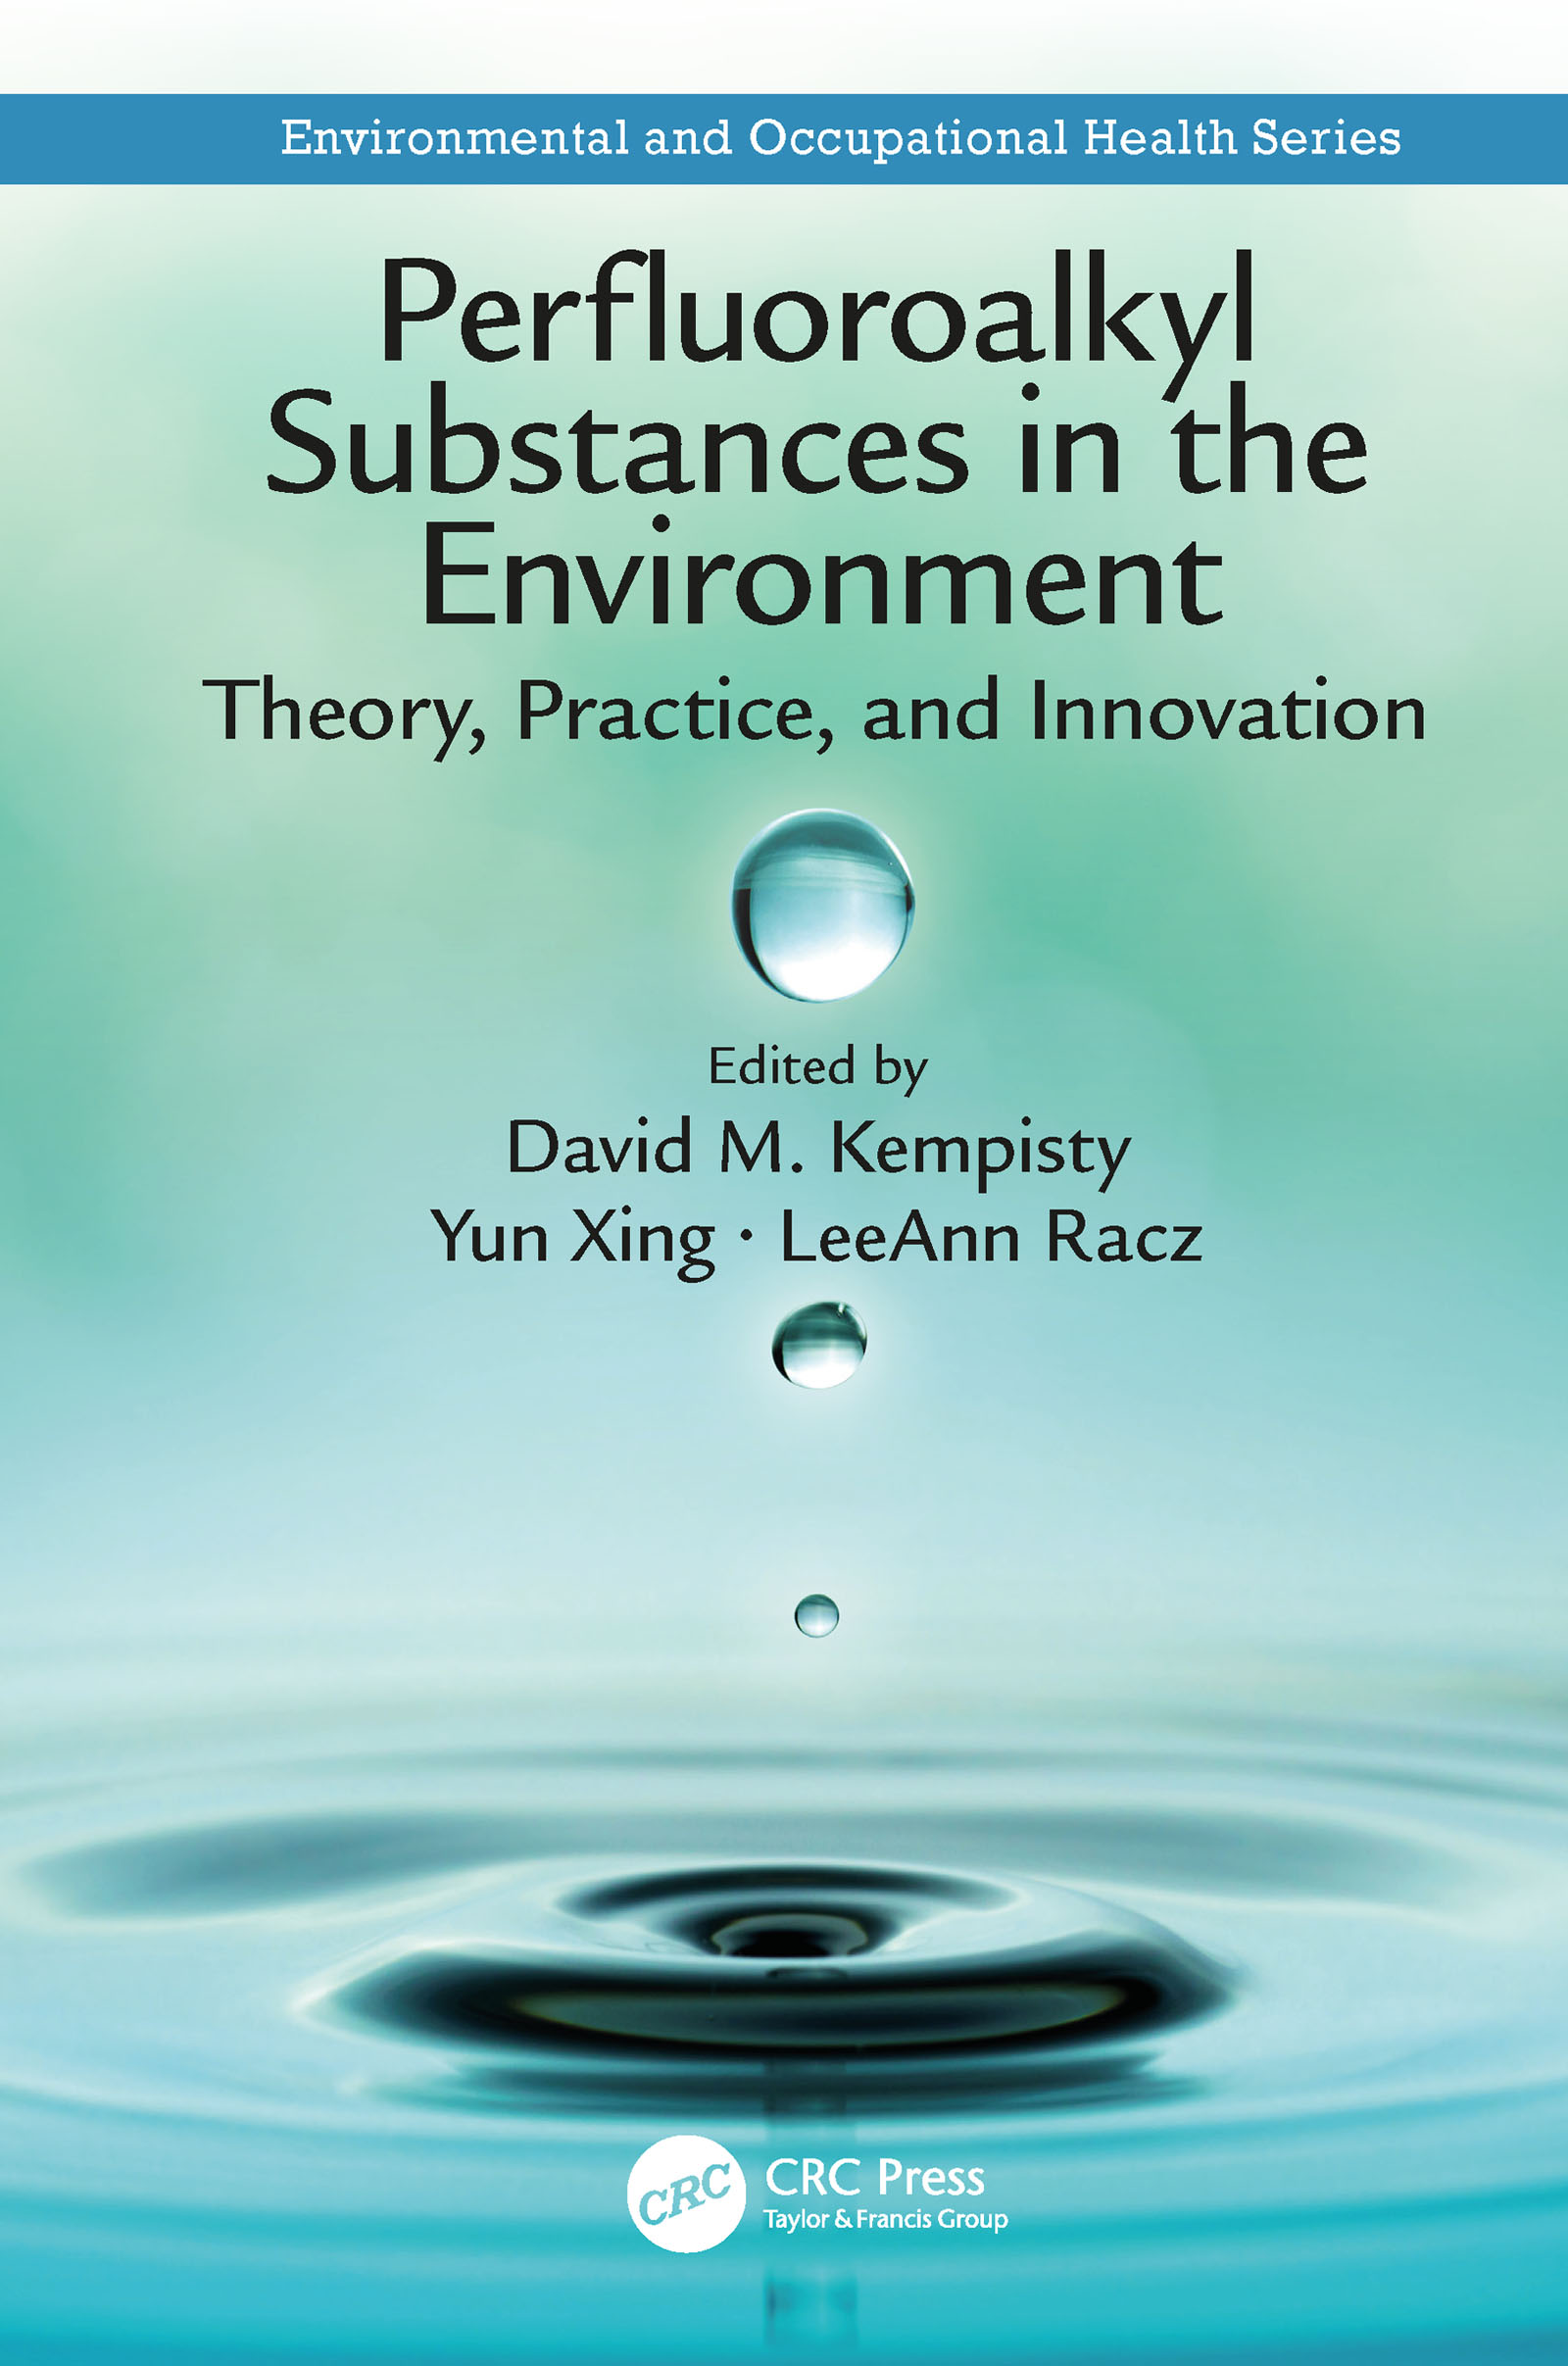 Perfluoroalkyl Substances in the Environment